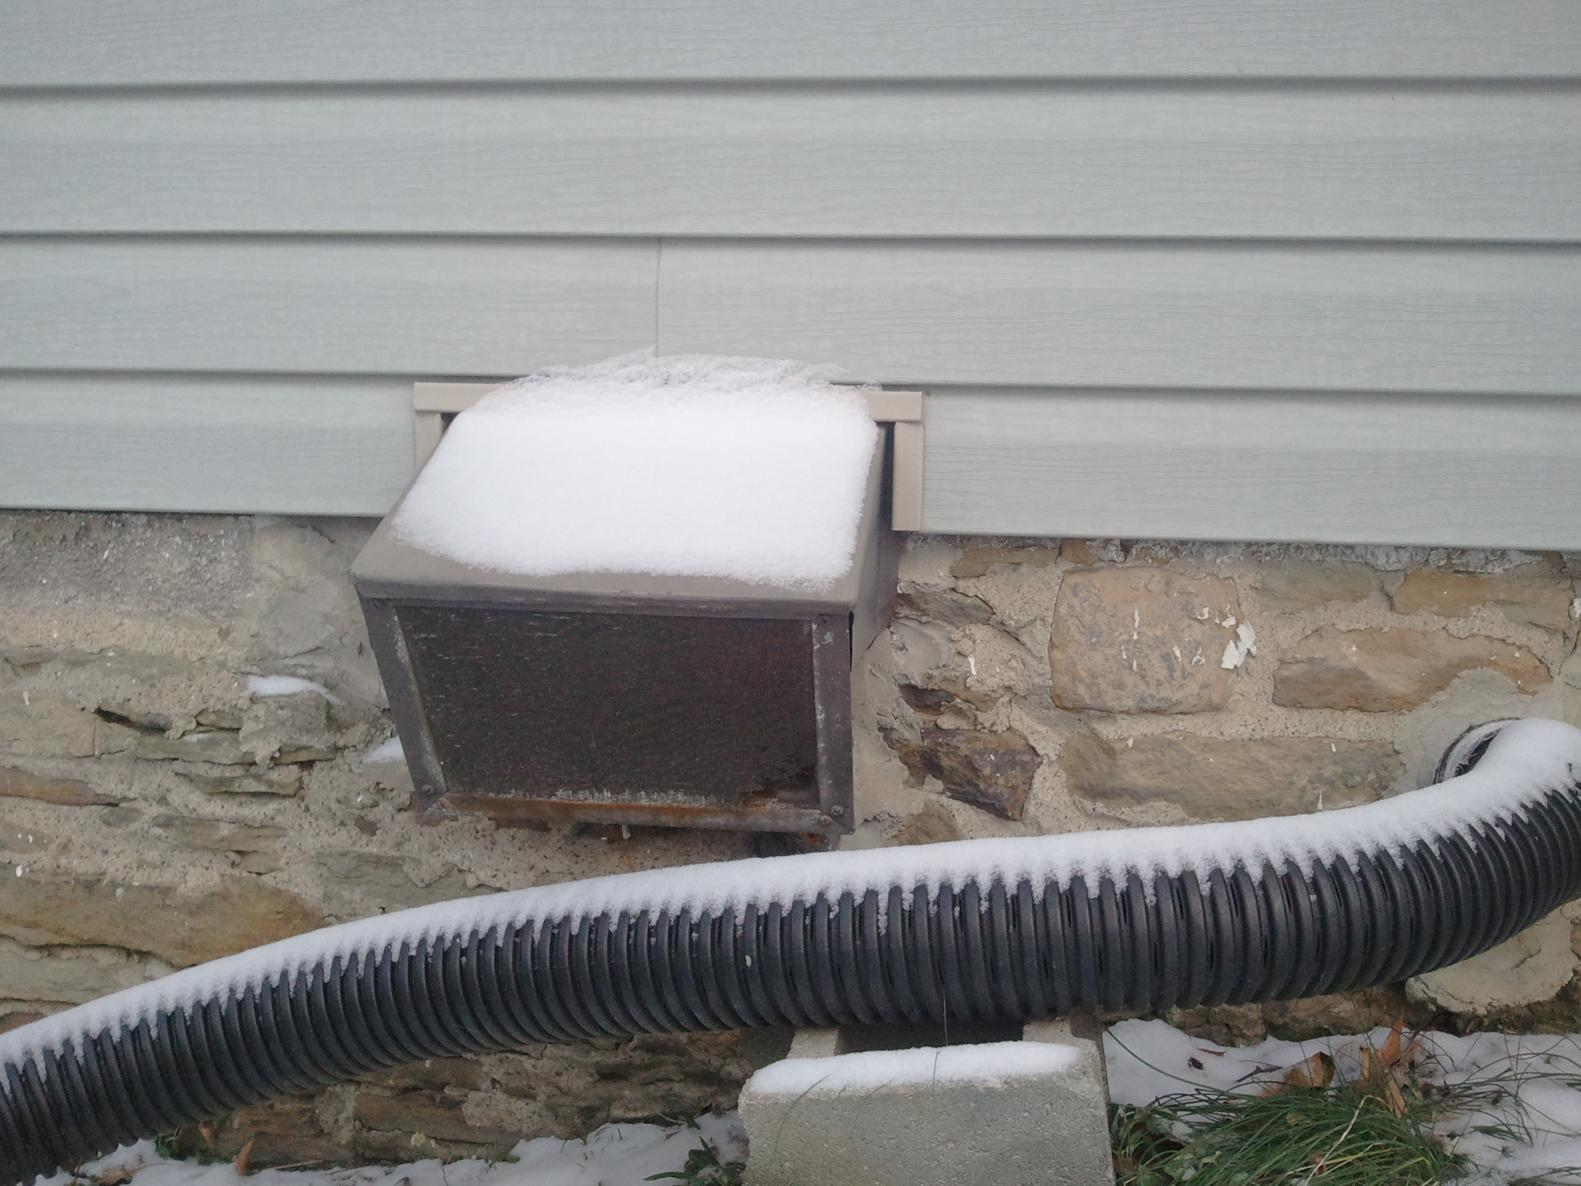 Fresh air duct work for oil furnace-2010-12-07-08.36.37.jpg